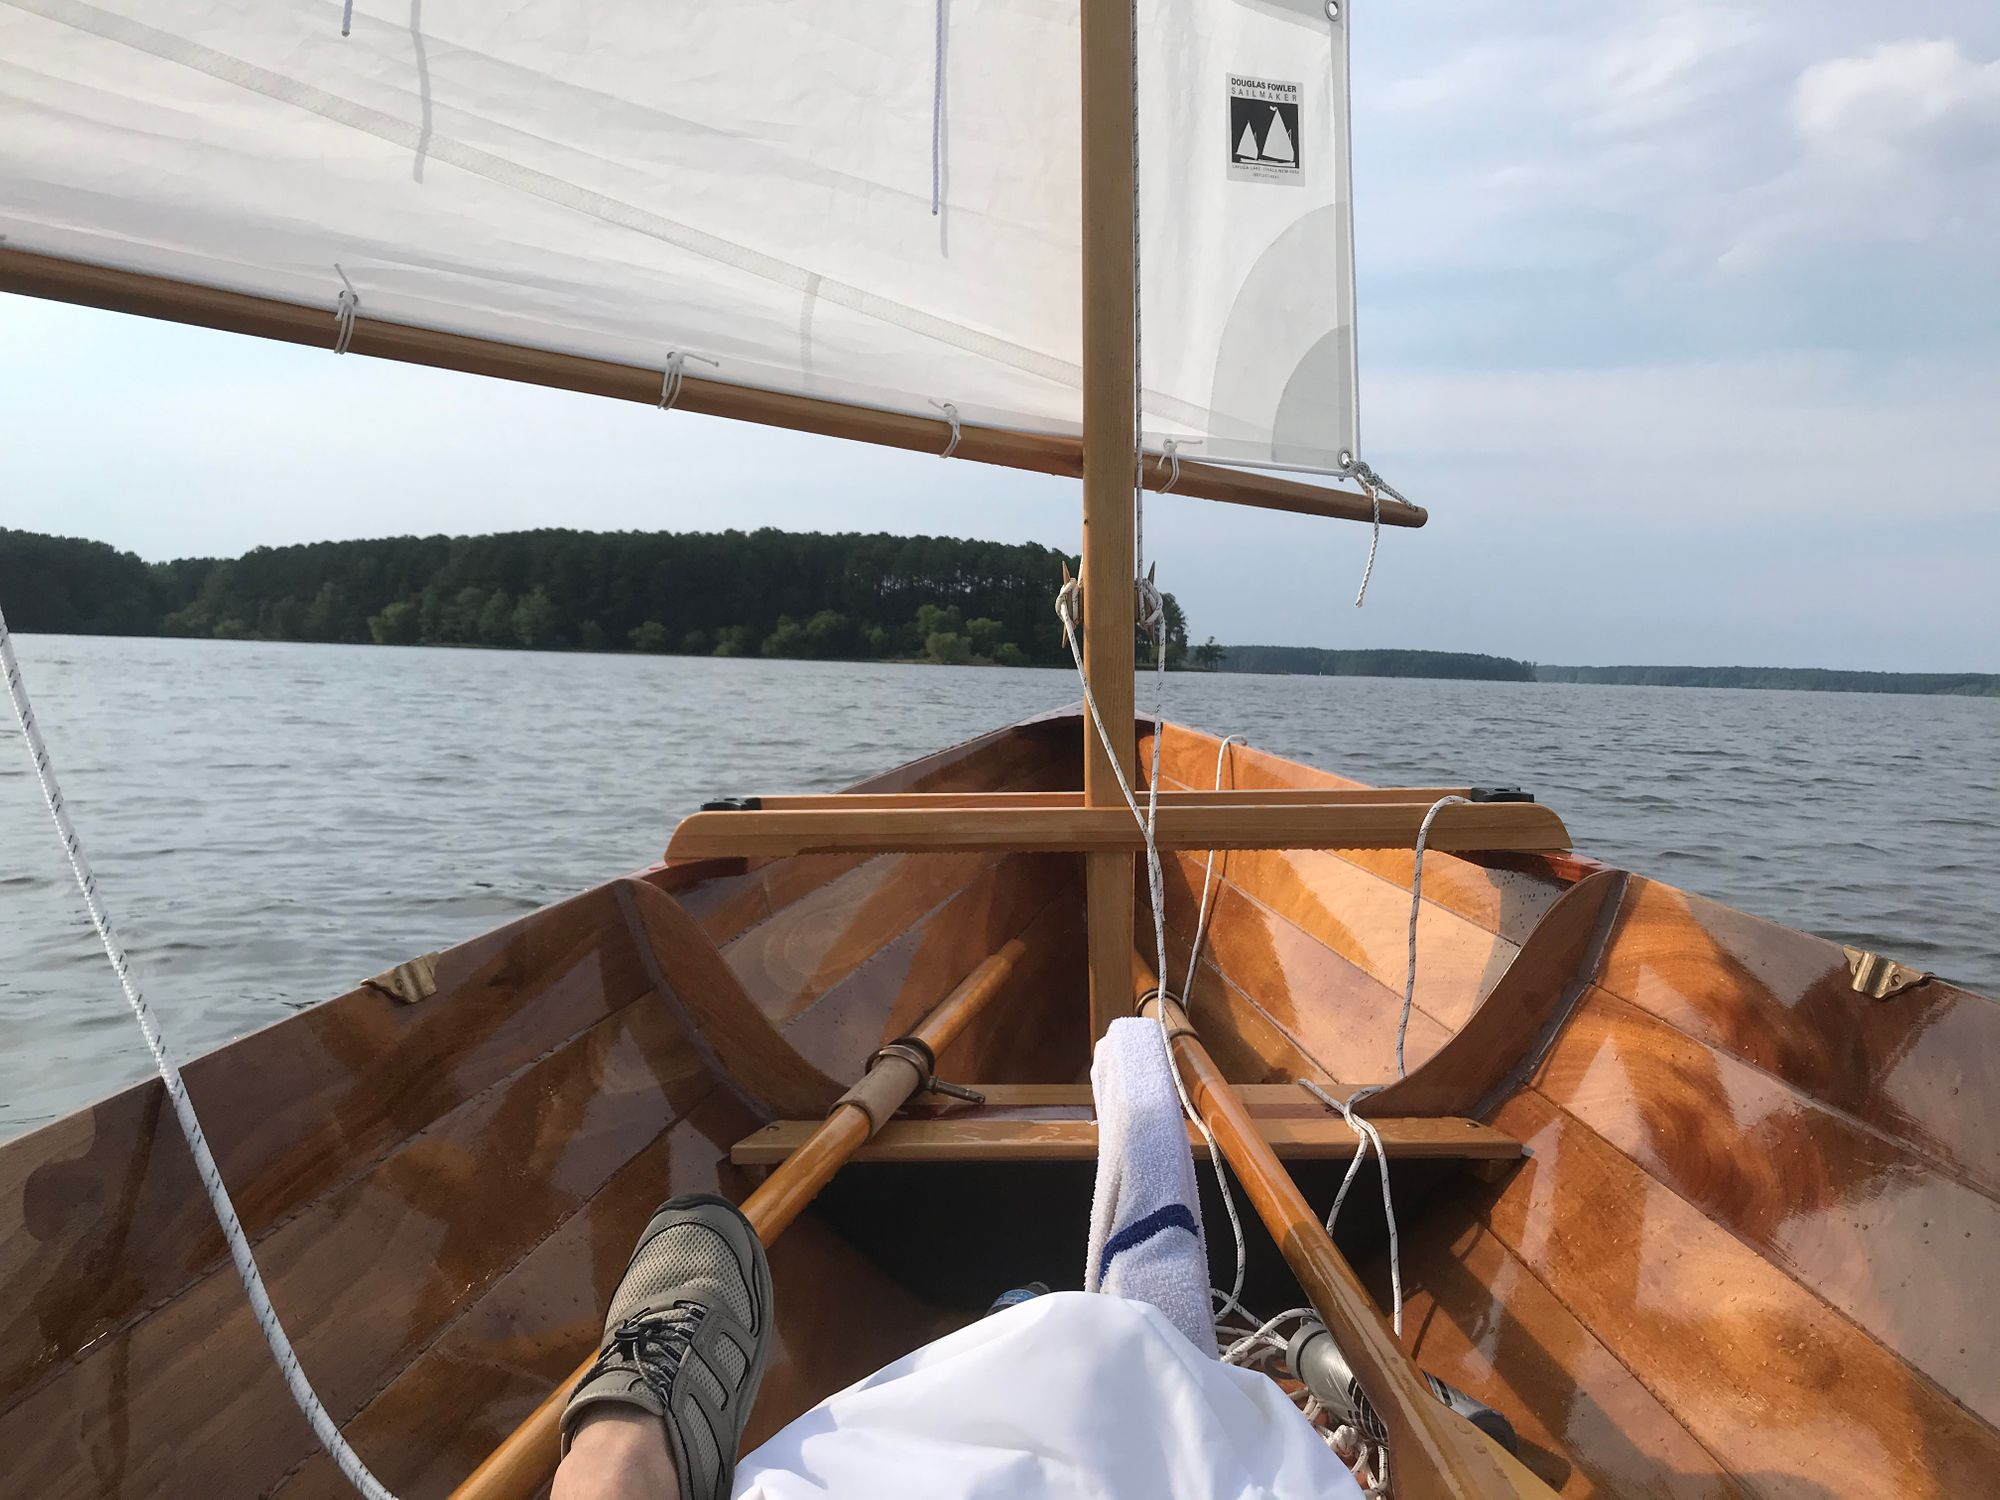 Picture of the bow of a sailboat, with sail, oars, and foot in view